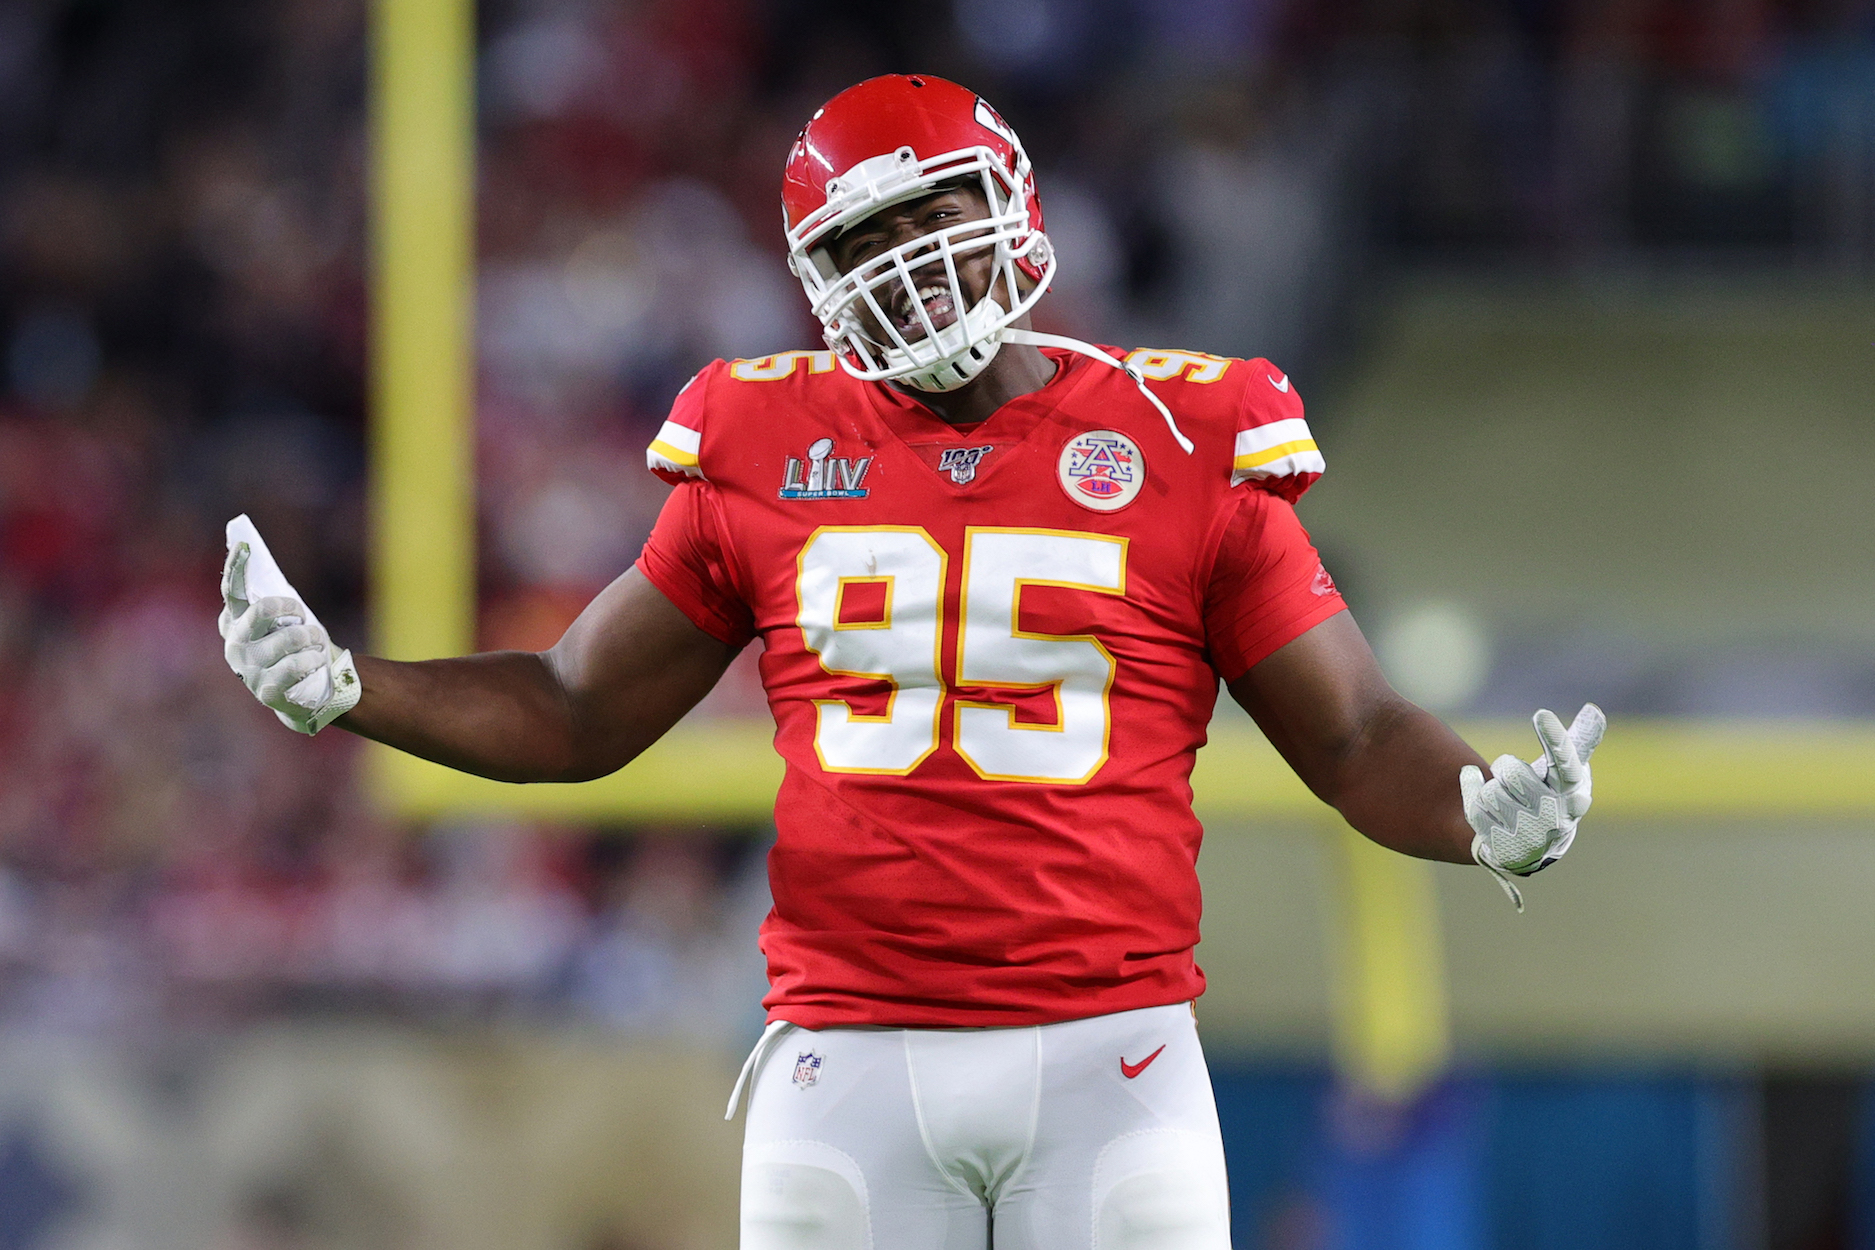 Kansas City Chiefs defensive lineman has earned less than $50,000 per tackle in the NFL